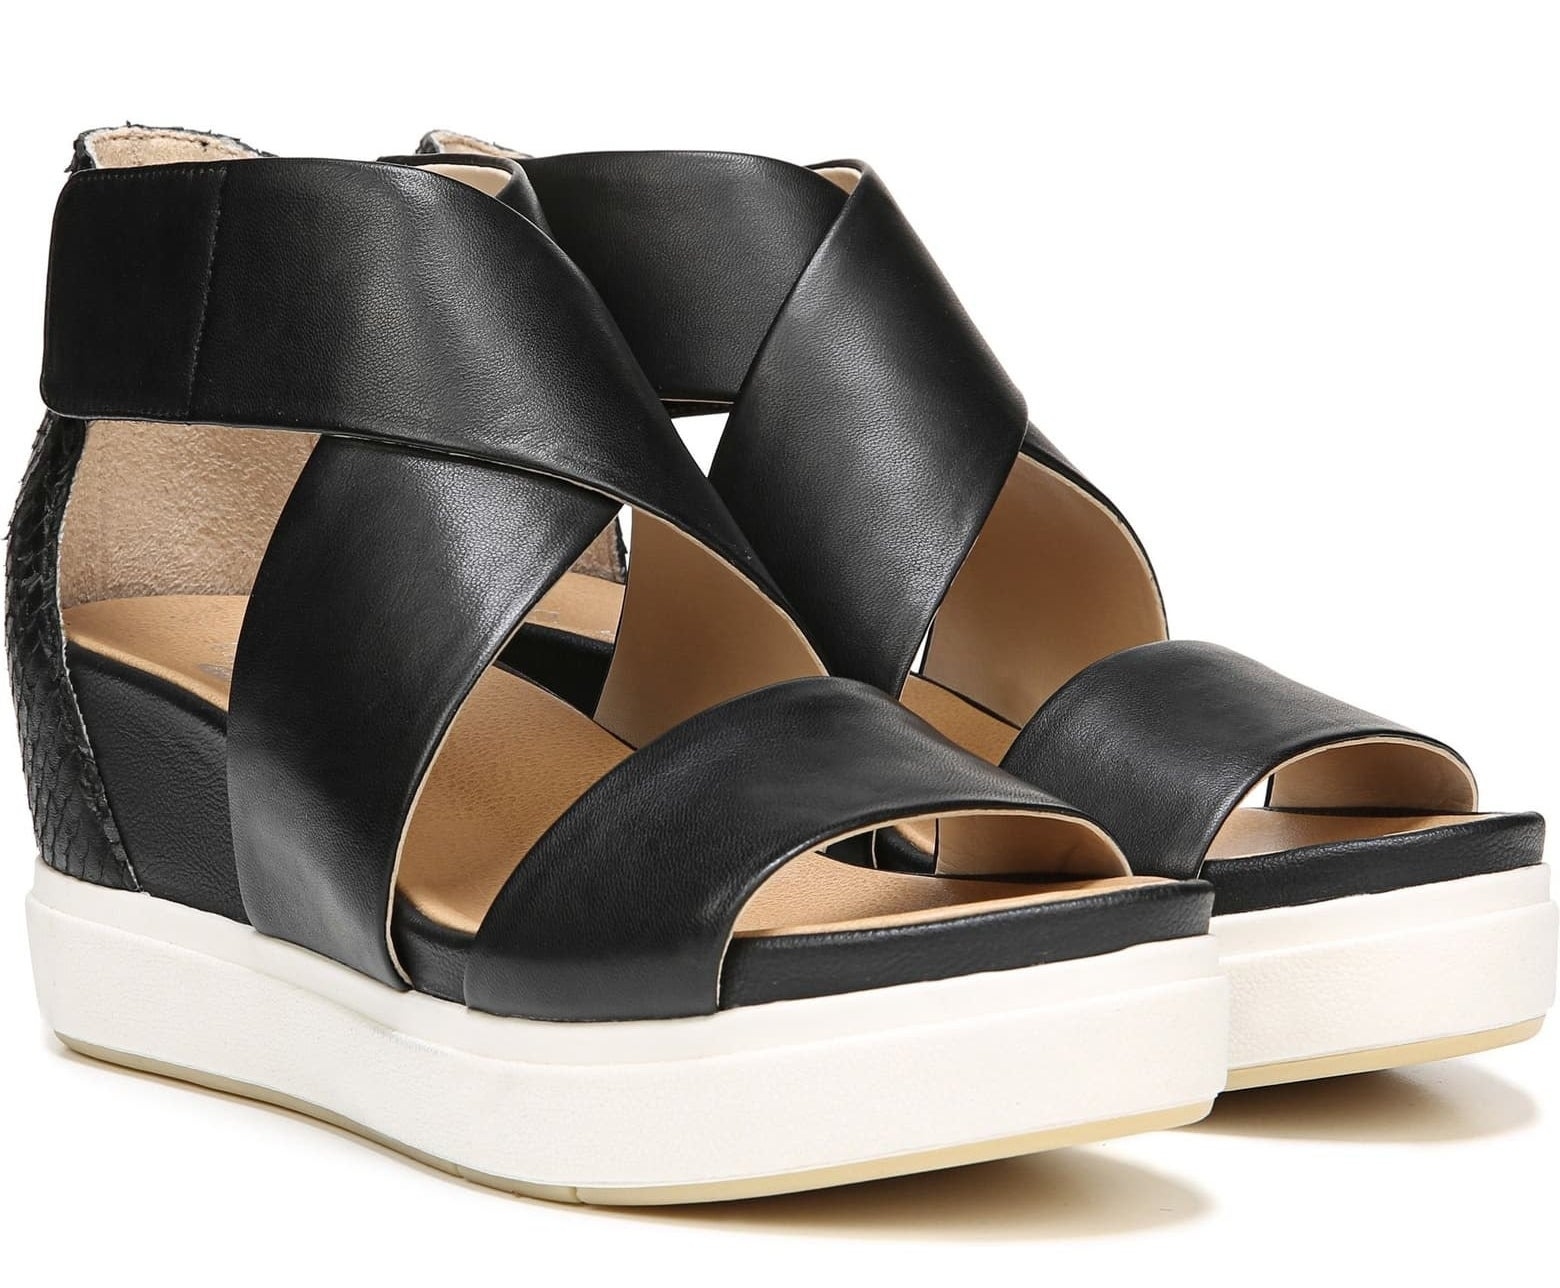 The strappy wedges with white thick sole